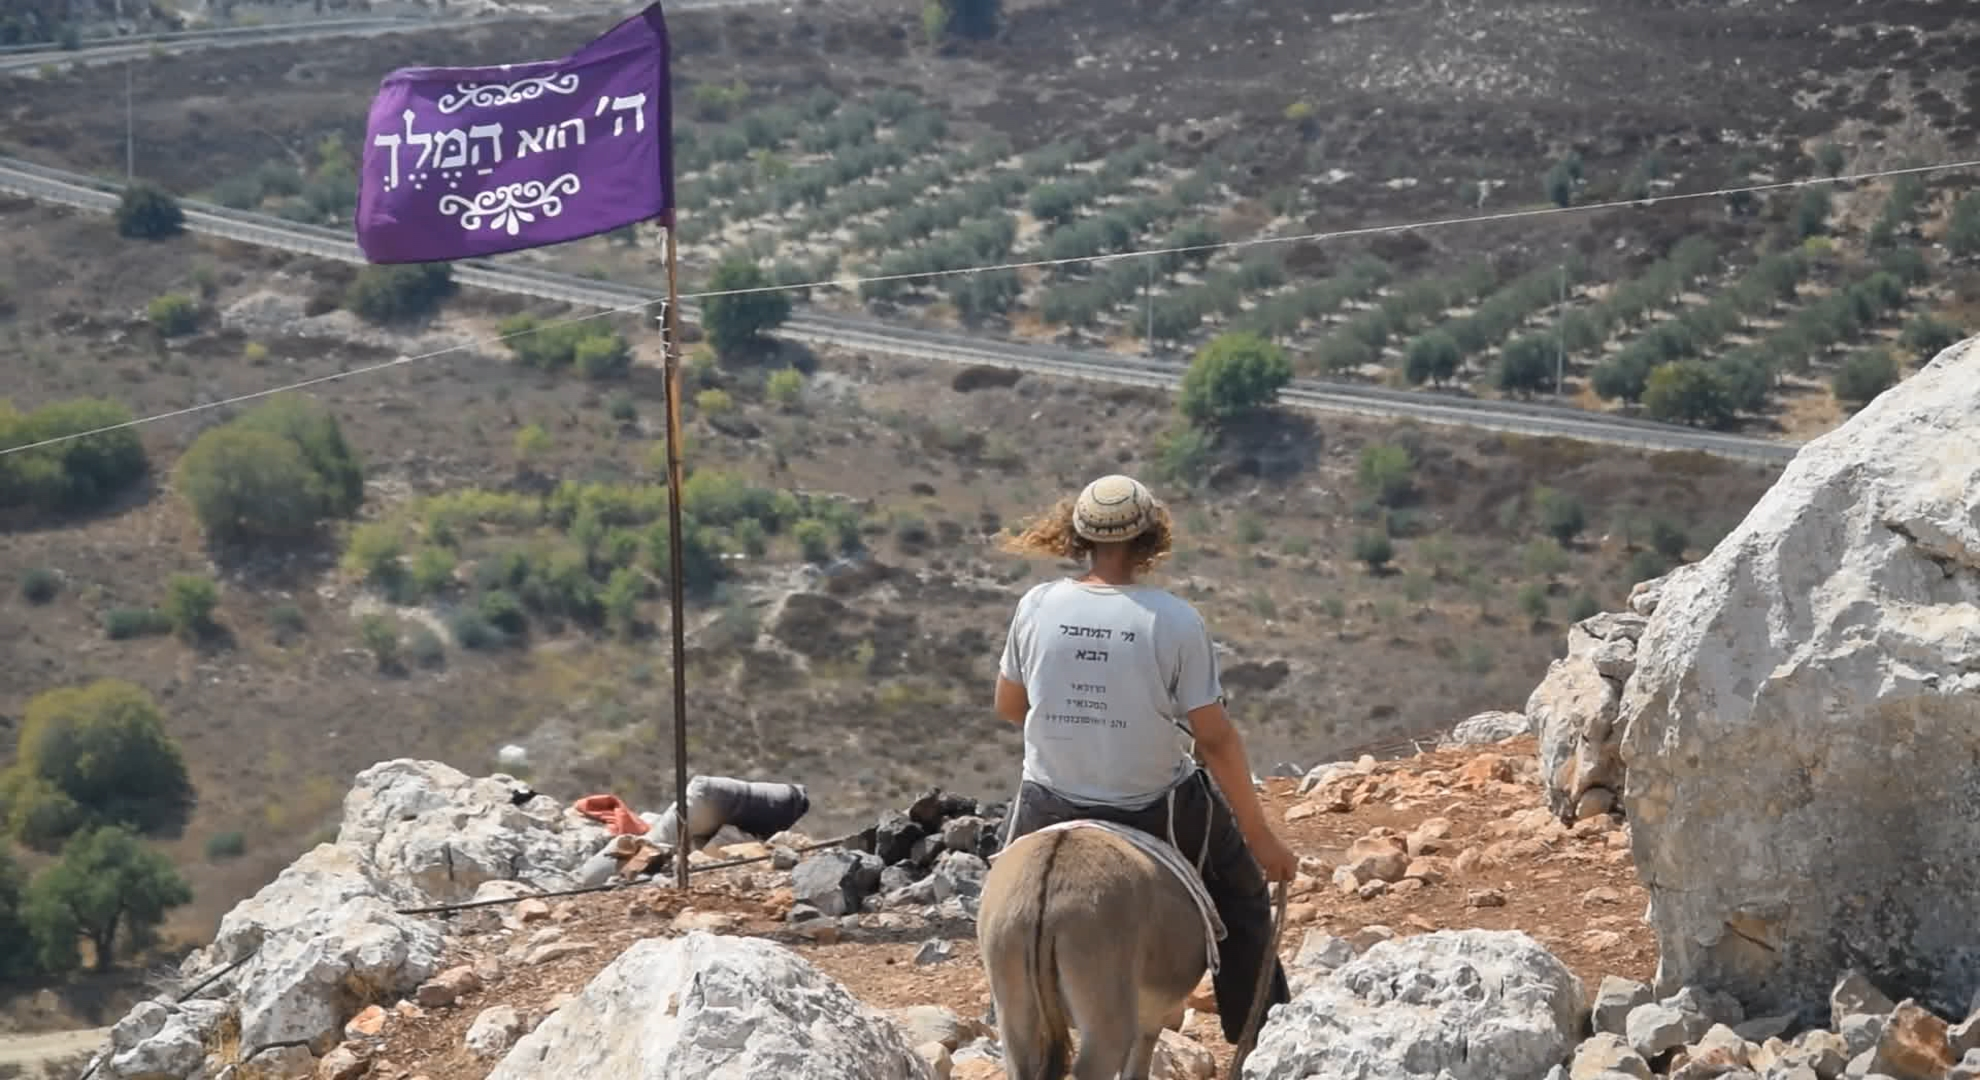 """Illustrative: A member of the """"hilltop youth"""" rides a donkey at an illegal outpost in the northern West Bank. (Credit: Zman Emet, Kan 11)"""